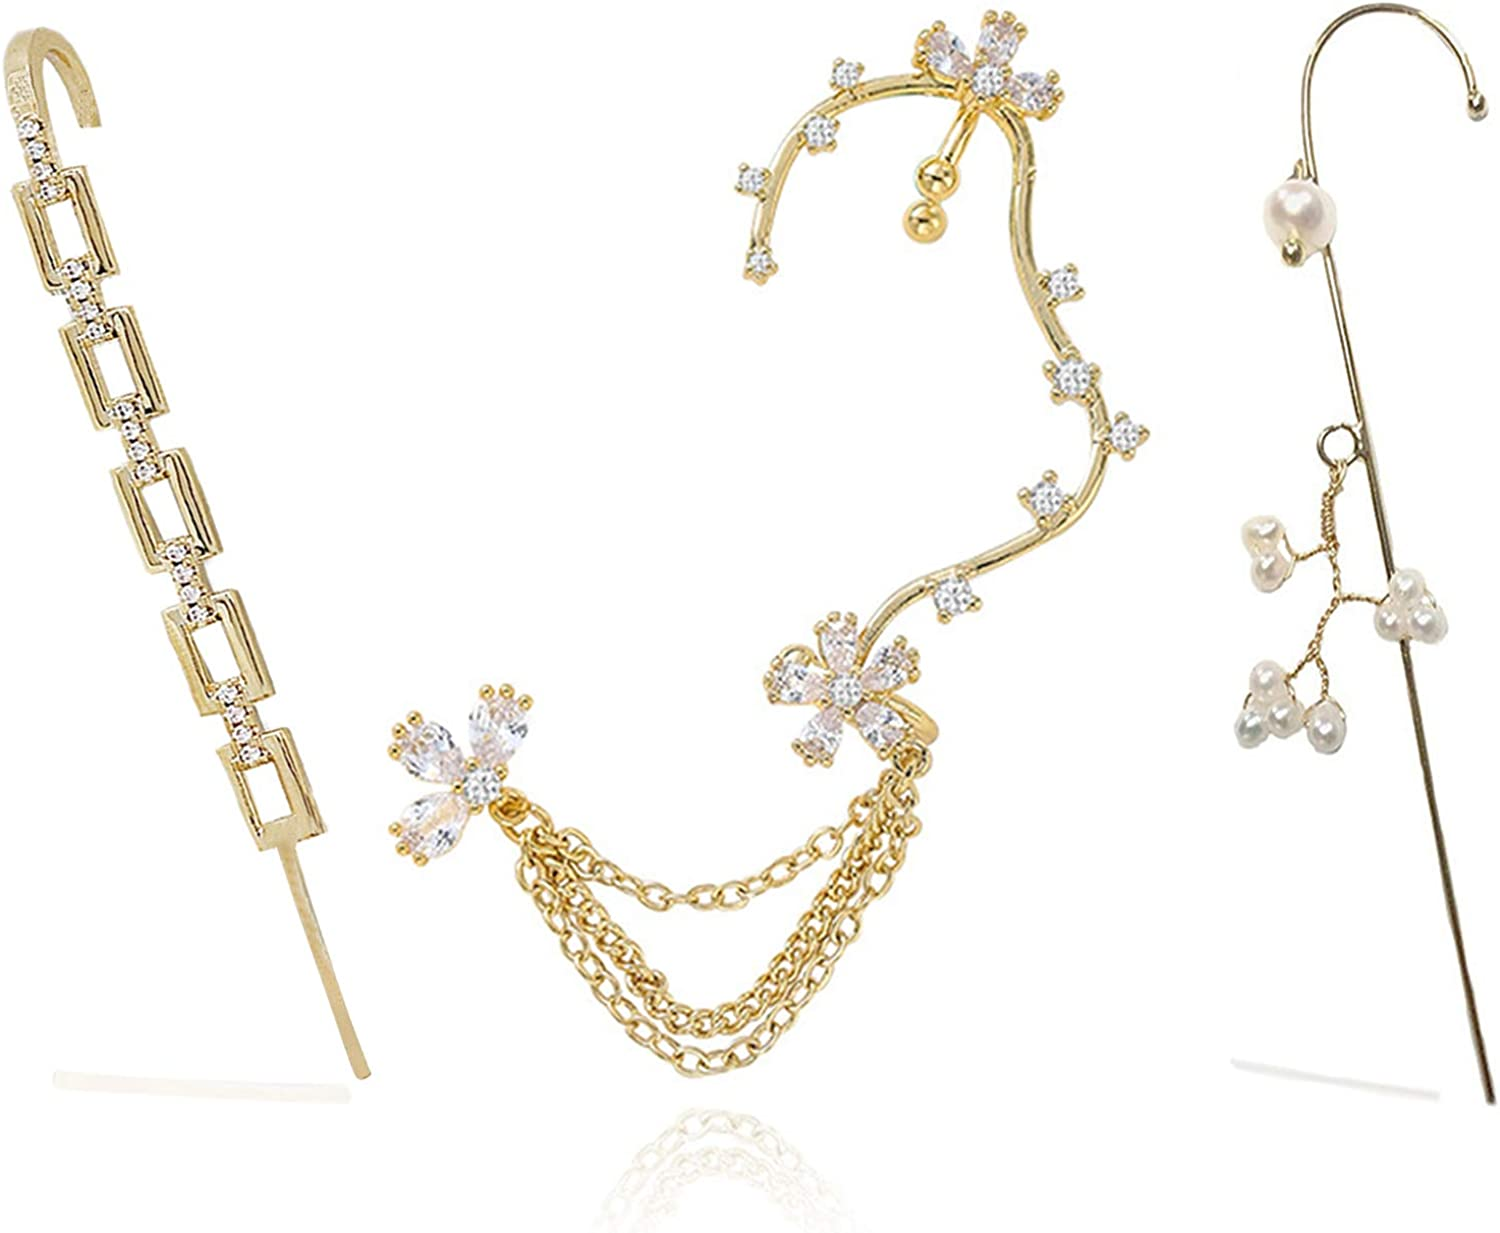 ZGDHHZDX 3PCS Ear Cuff Crawler Earrings for Women Girl, Gold New Hypoallergenic Ear Wrap Crawler Hoop Earrings, With Hook Cuffs Crawler Earrings Ear with Gift Box